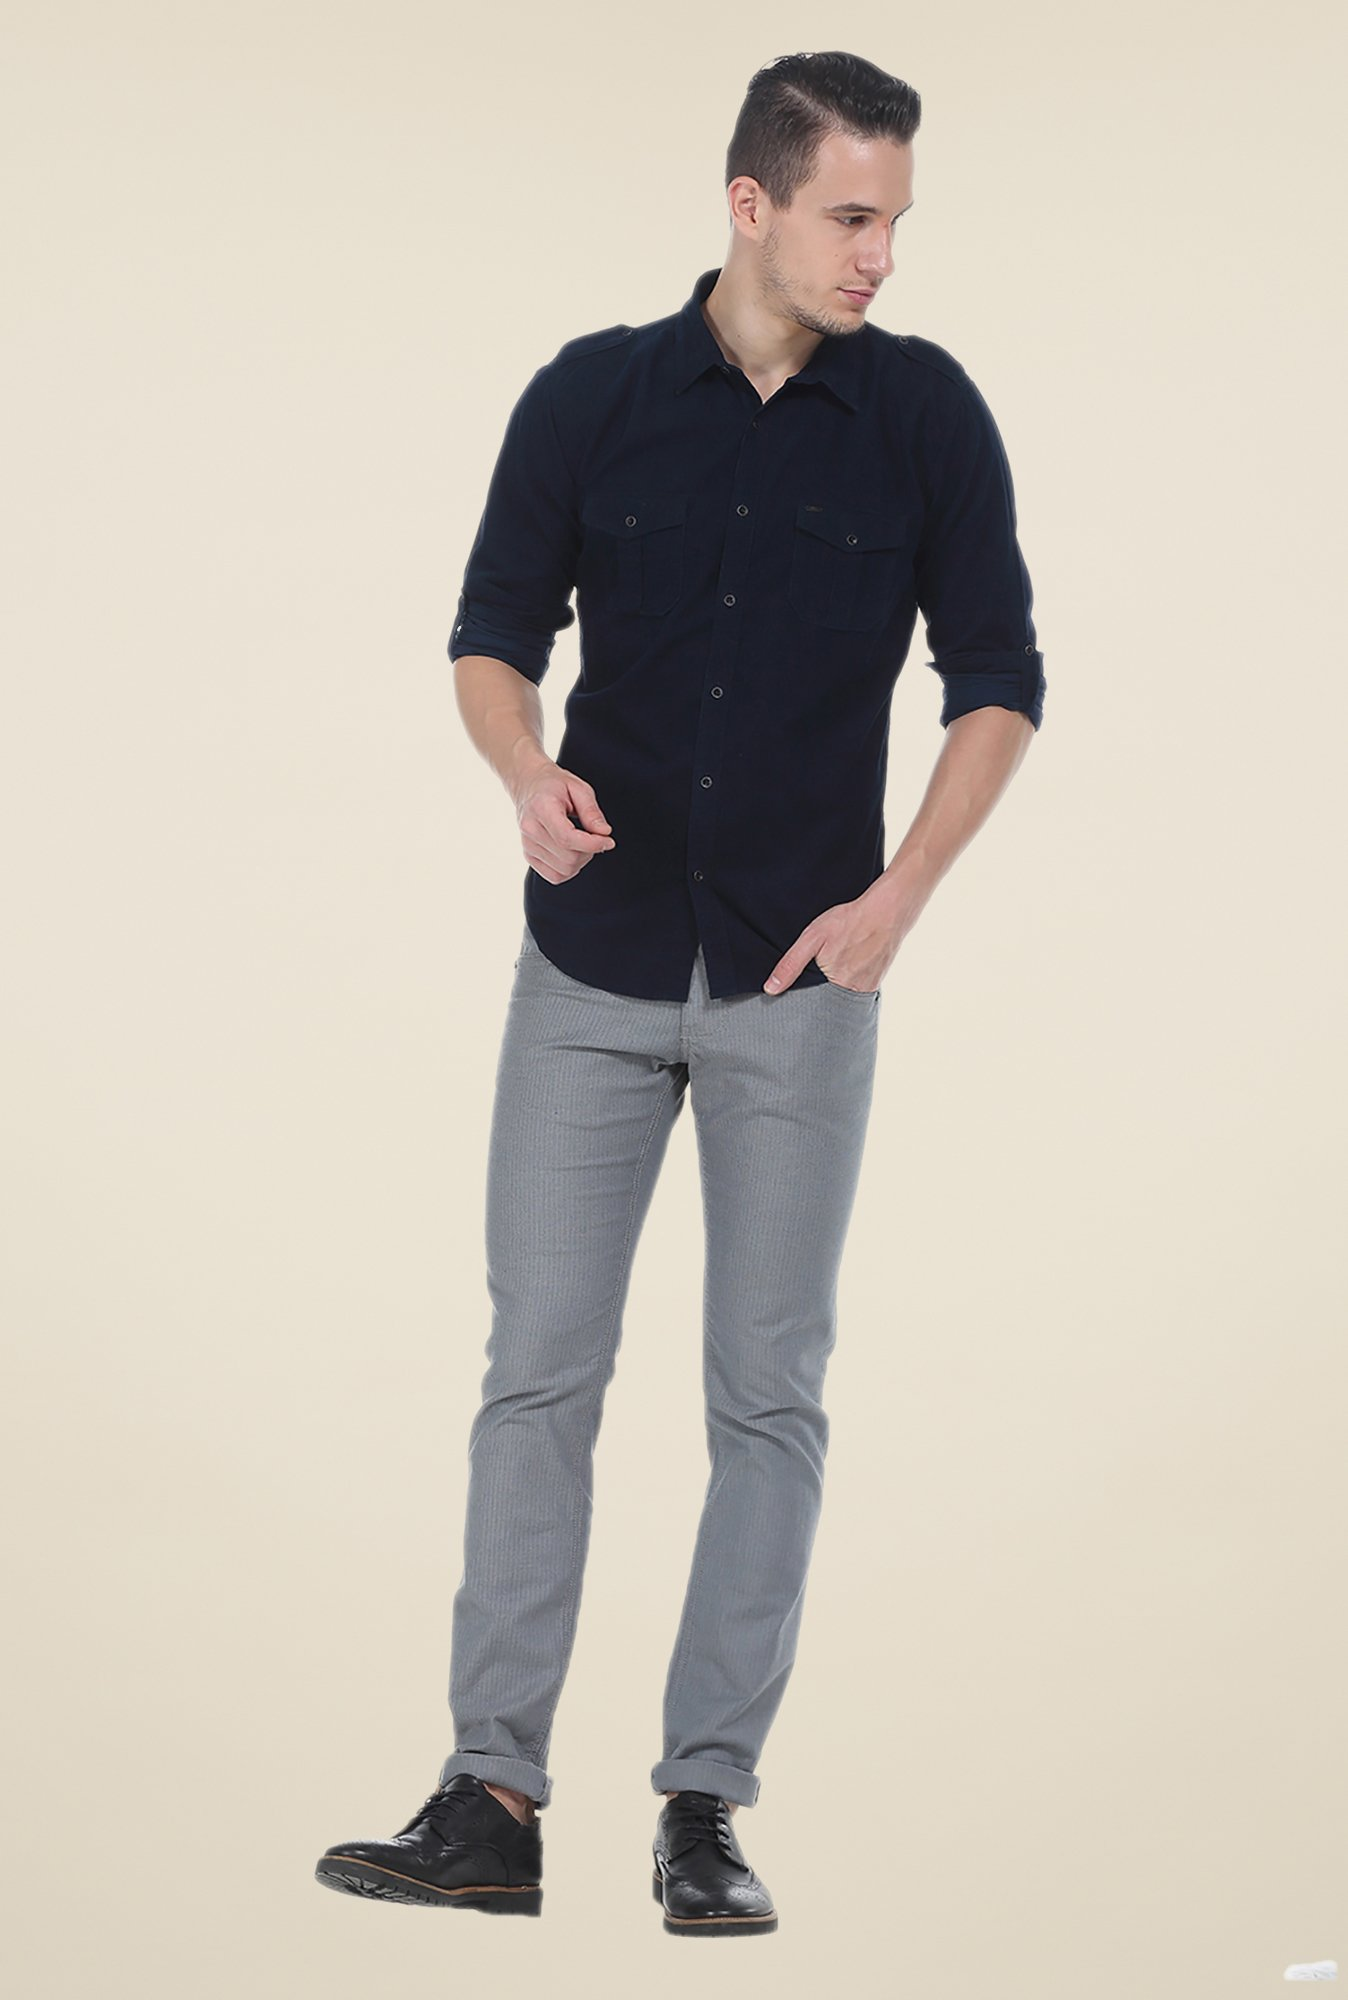 Basics Navy Solid Slim Fit Shirt